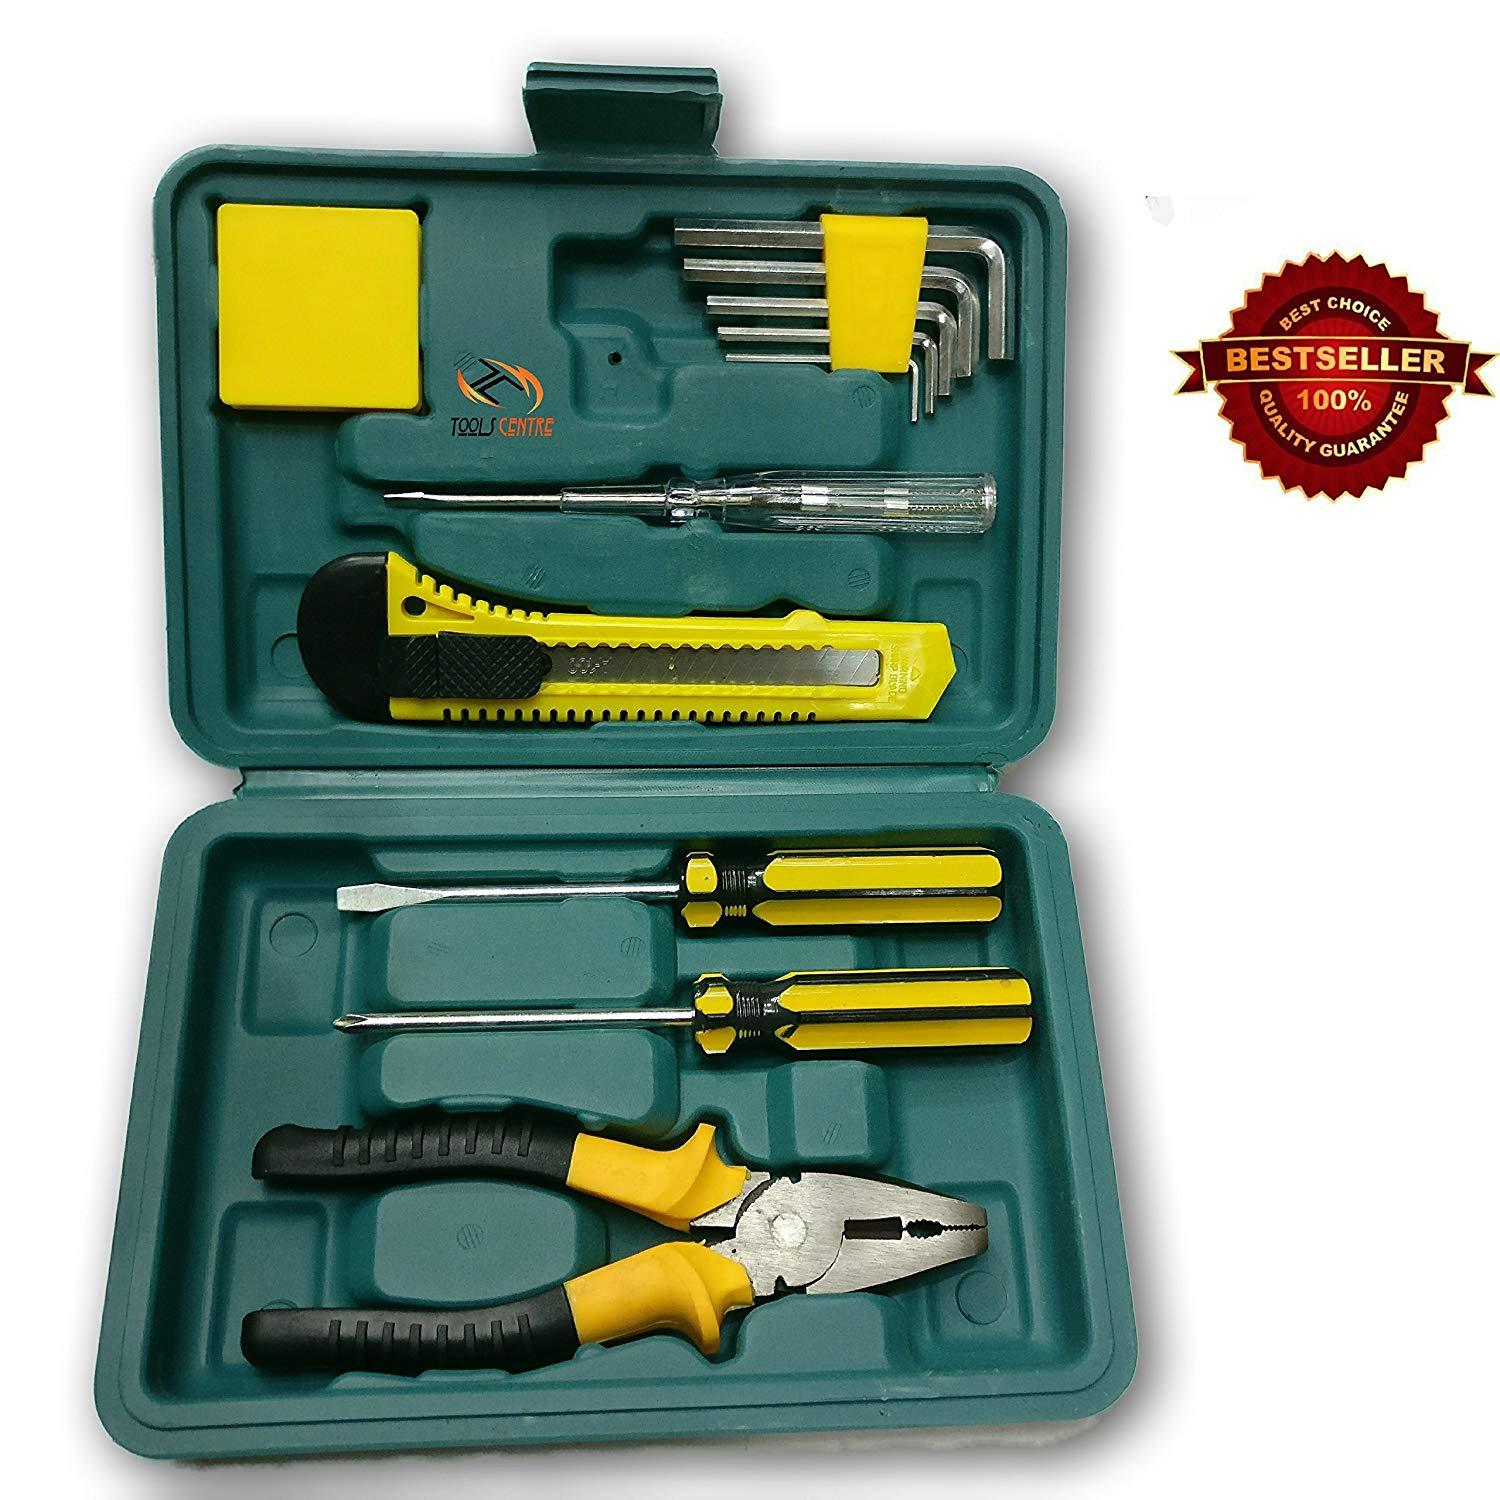 Tools Centre 11pcs Emergency Toolkit/Toolset for Professional & Home Purposes Maintenence Auto car